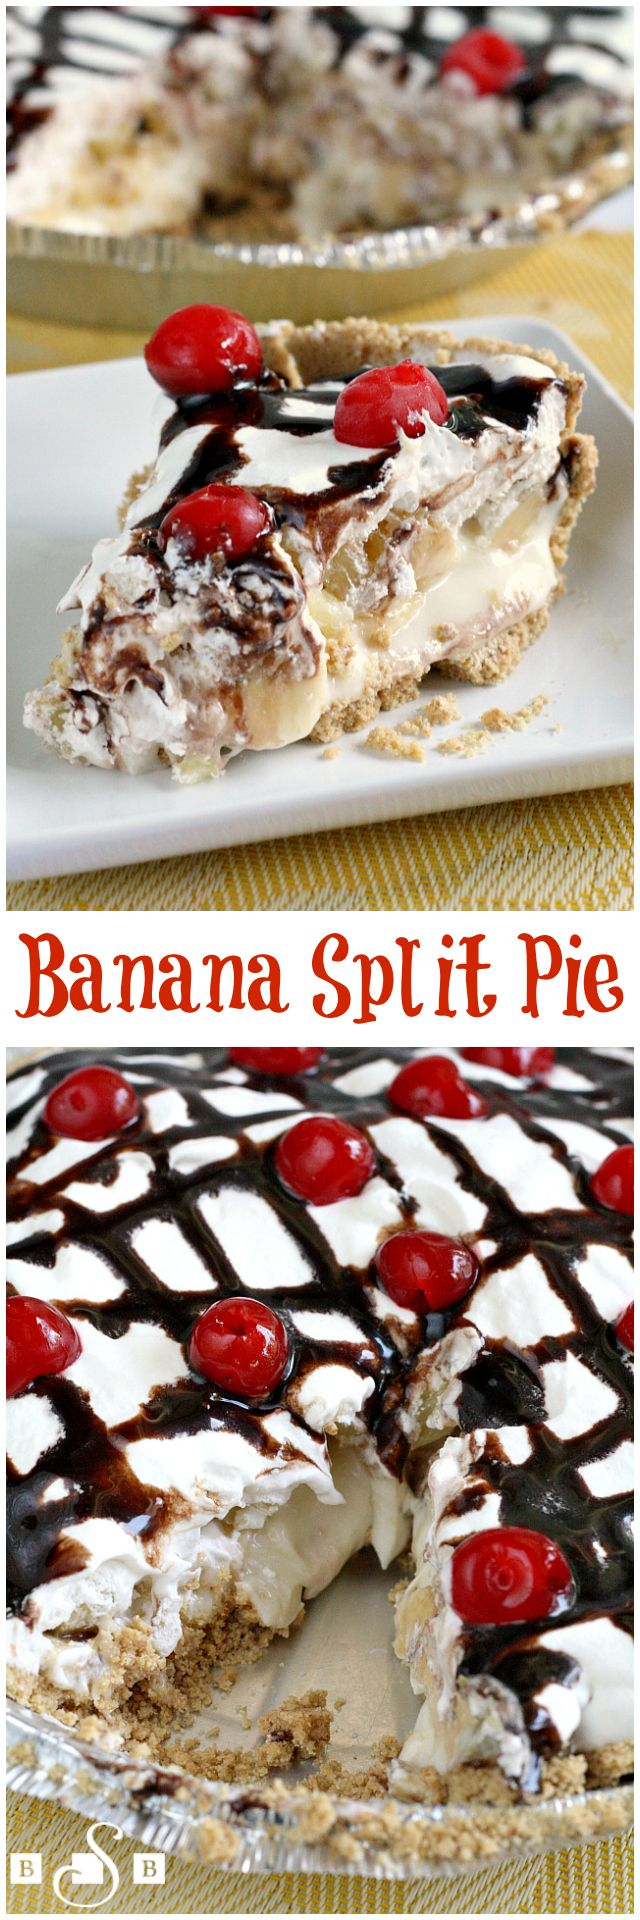 Banana Split Pie - all your favorite banana split flavors in one easy-to-make pie! Dessert recipe from Butter With a Side of Bread